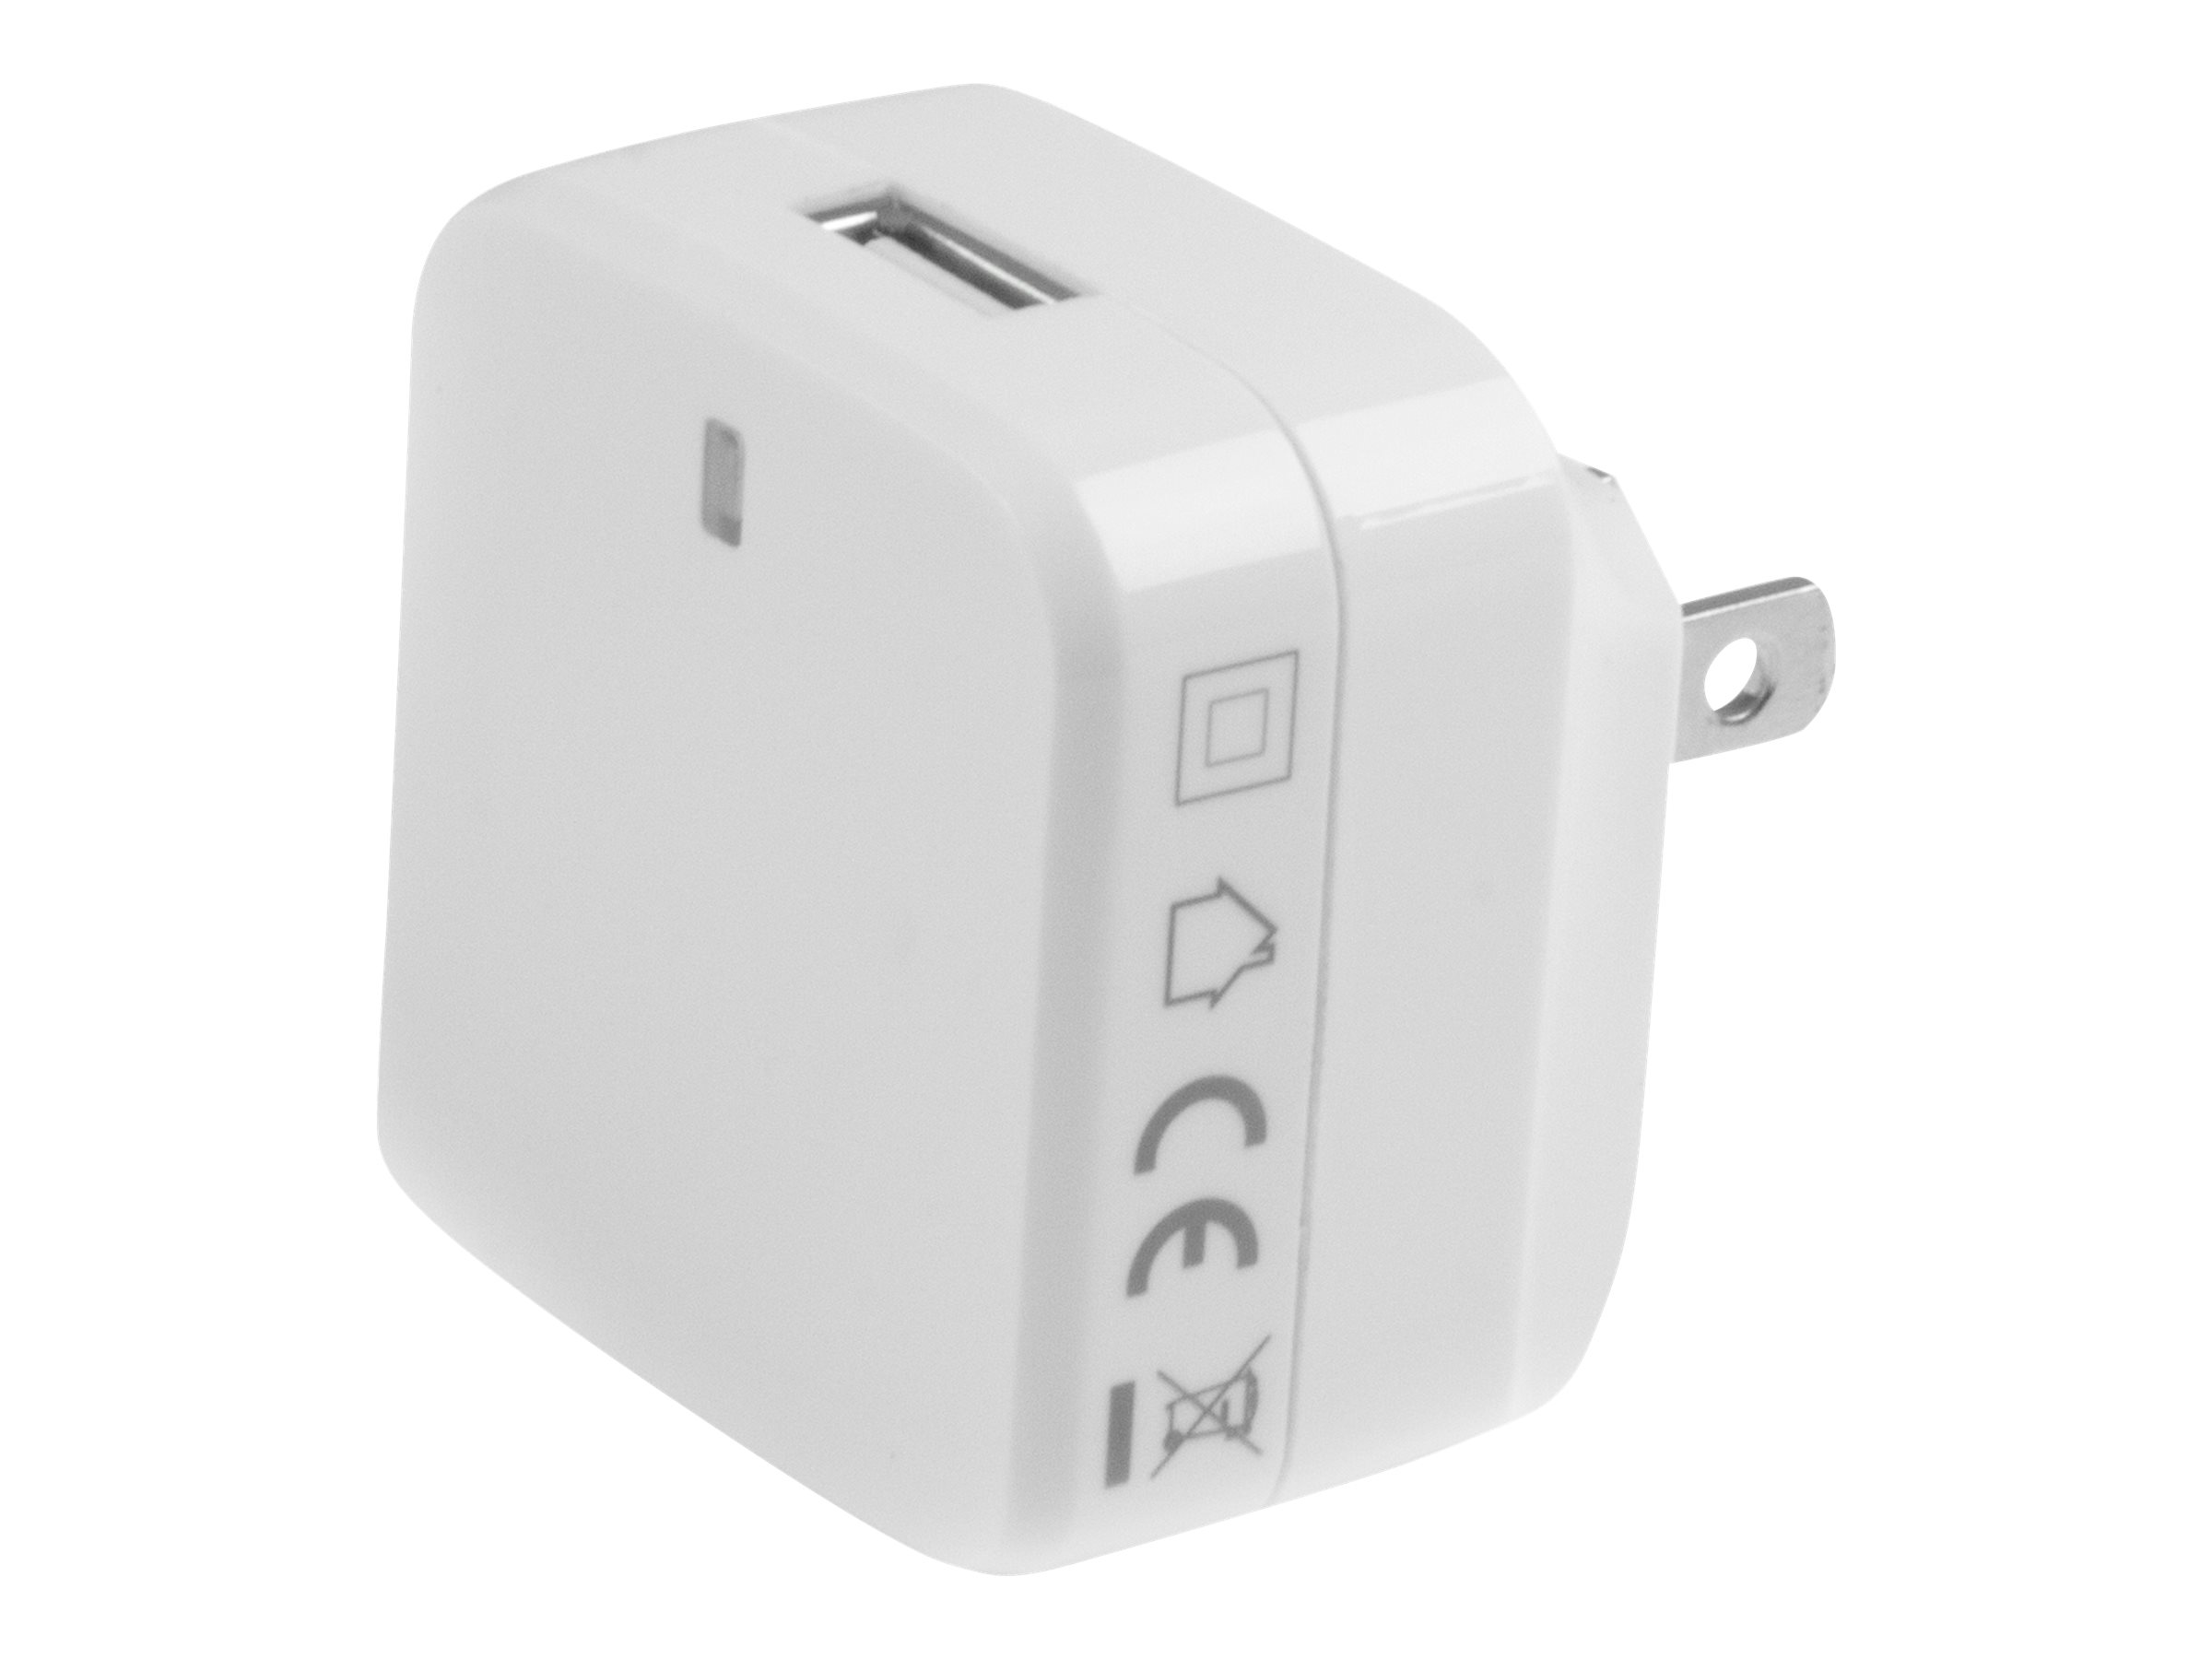 StarTech.com White USB Wall Charger - Quick Charge 2.0 - 110V/220V Charger power adapter - USB